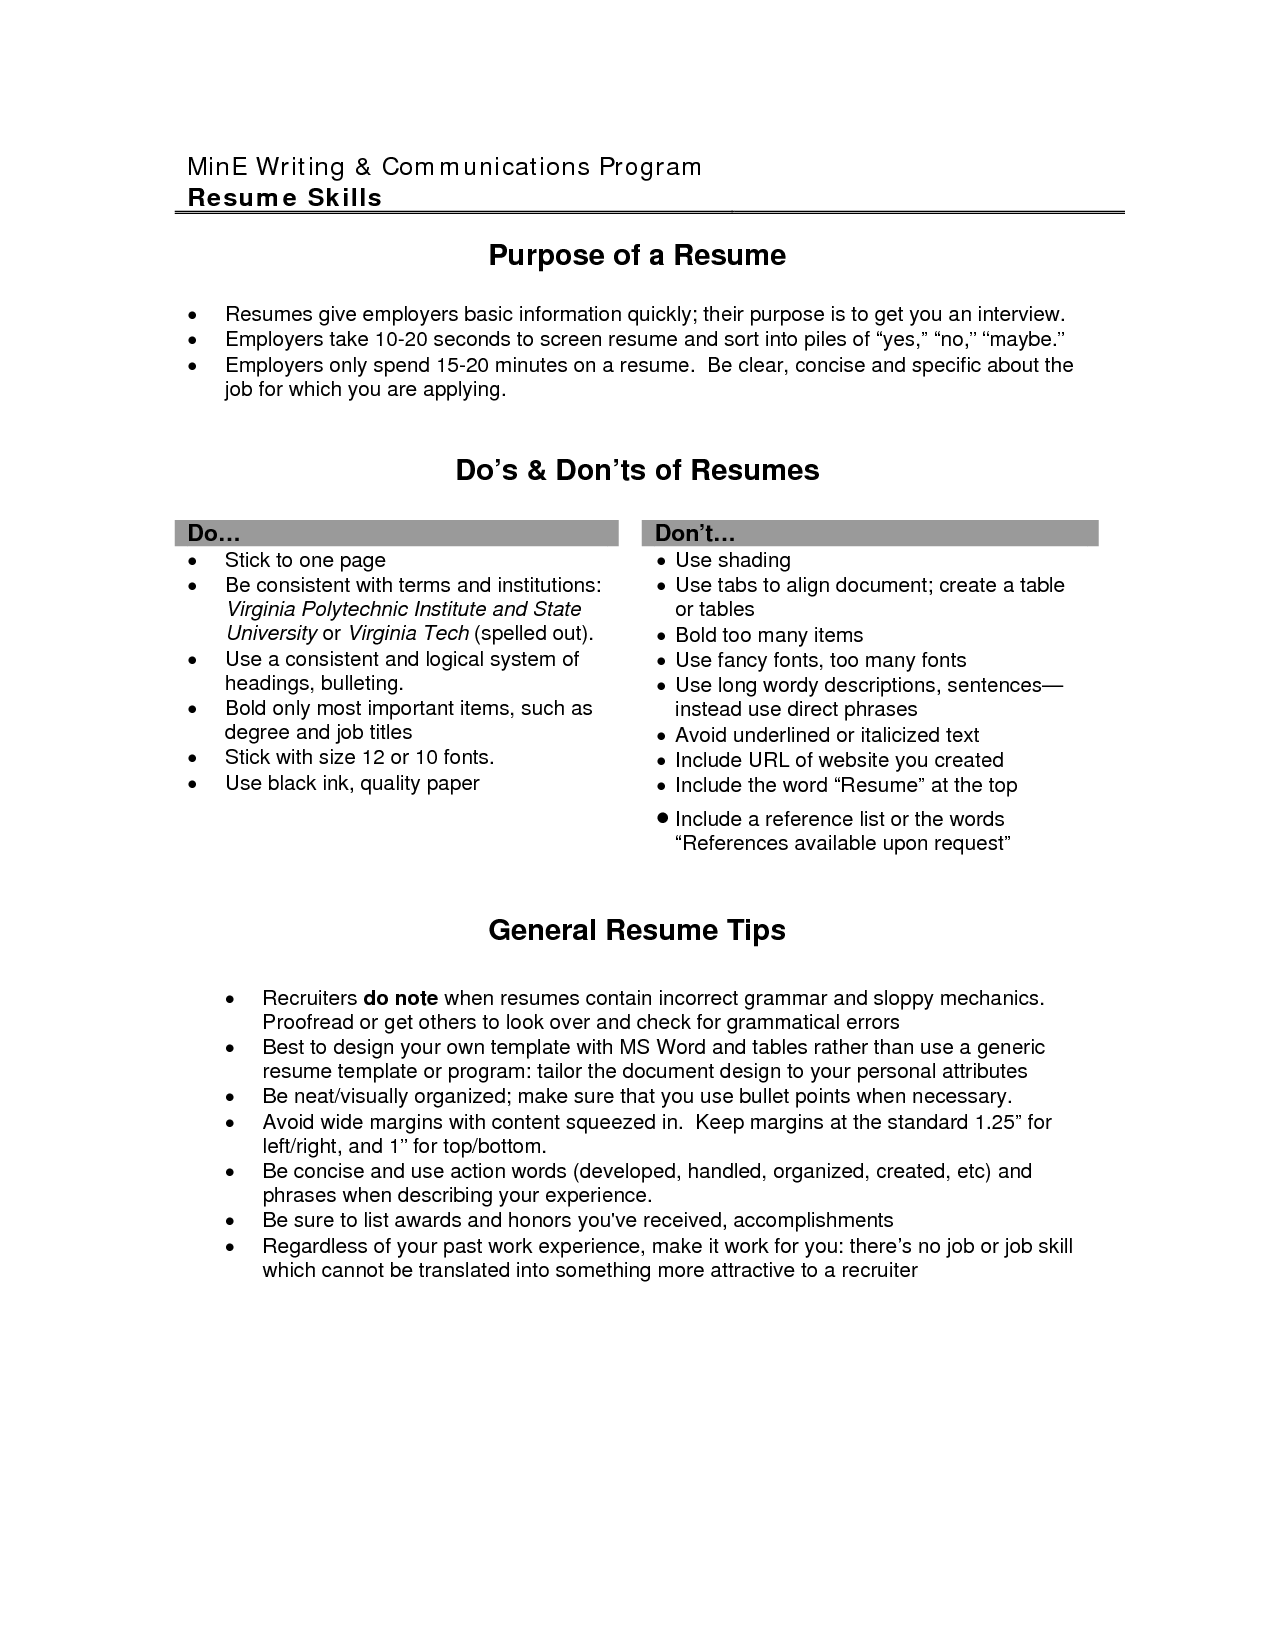 Objective Of Resume Examples Objective Resume For Sports  Writing An Objective For A Resume